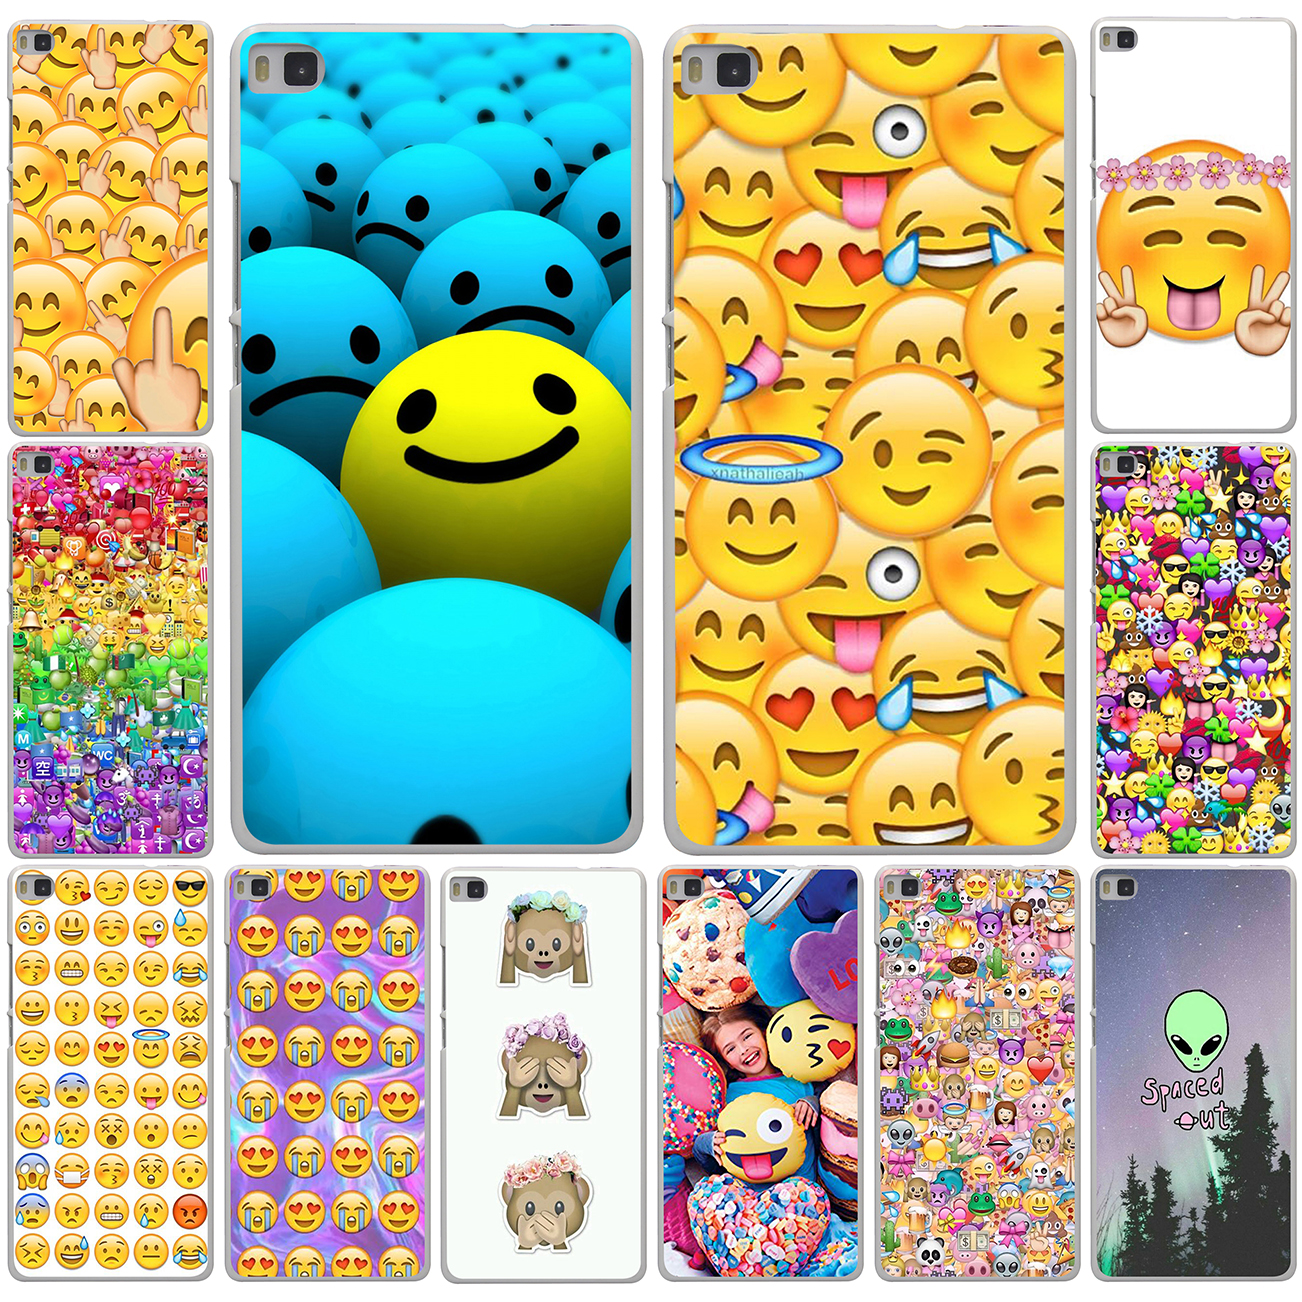 coque huawei p8 lite smiley